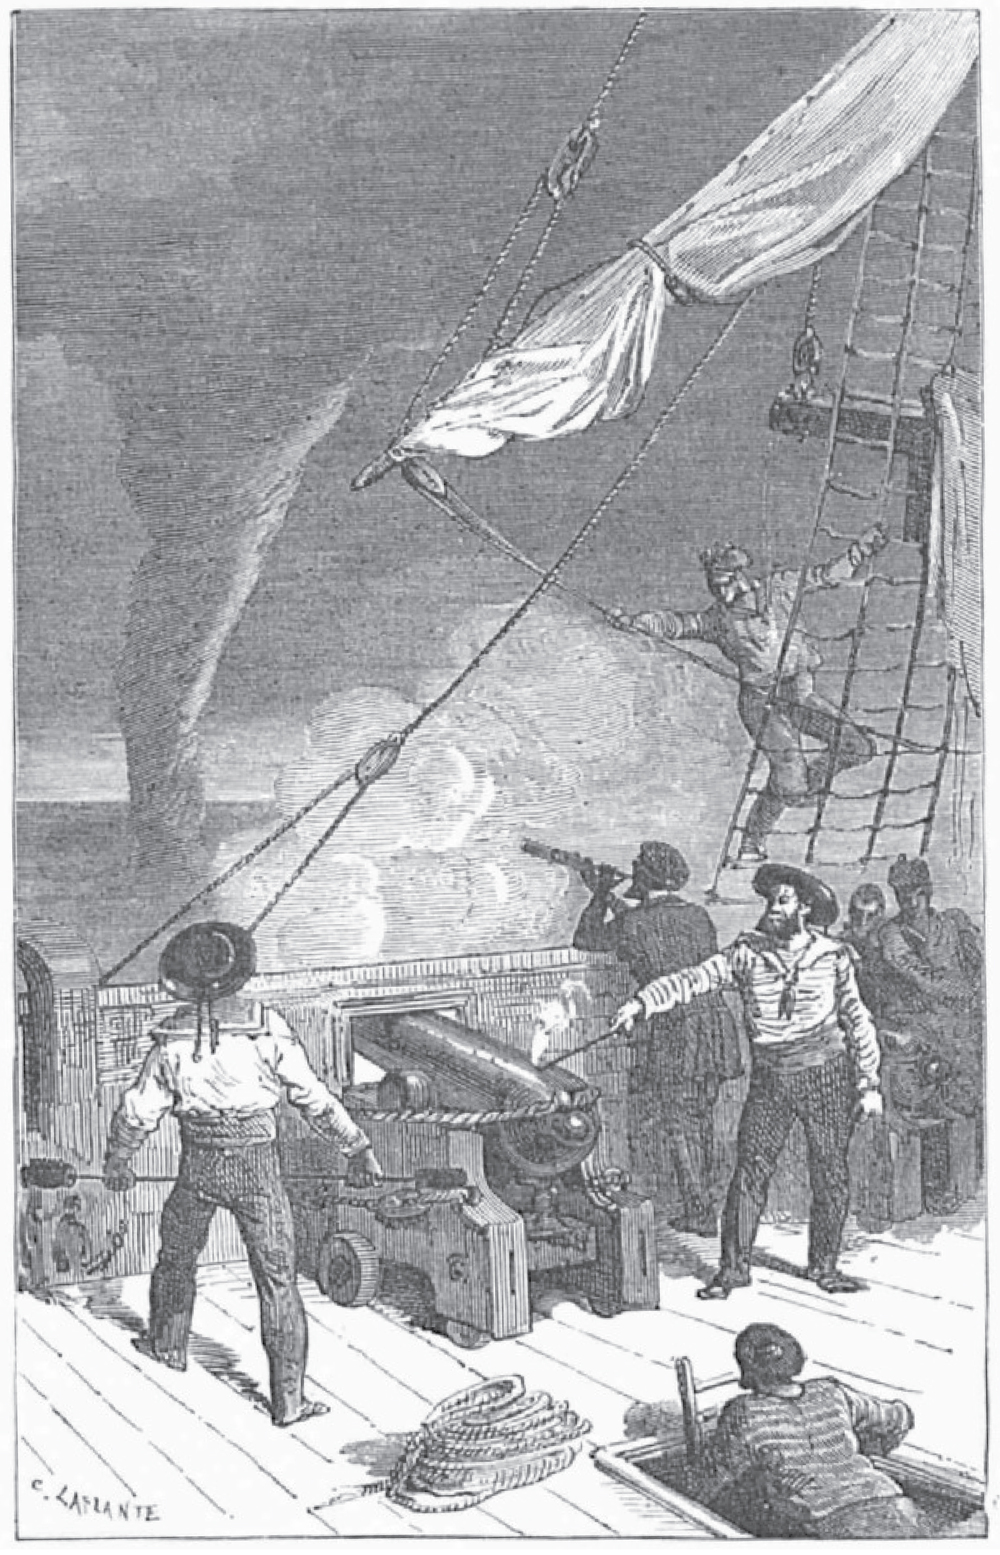 Captain Napier firing a cannon to break a waterspout (May1783). source: source: de Fonvielle, Wilfrid, 1866: Eclairs et tonnerres (Thunder and Lightning) [illustrated  with 39 vignettes by E. Bayard and H. Clerget] Hachette, Paris, 318 pp. (via http://gallica.bnf.fr/, 1885 edition)